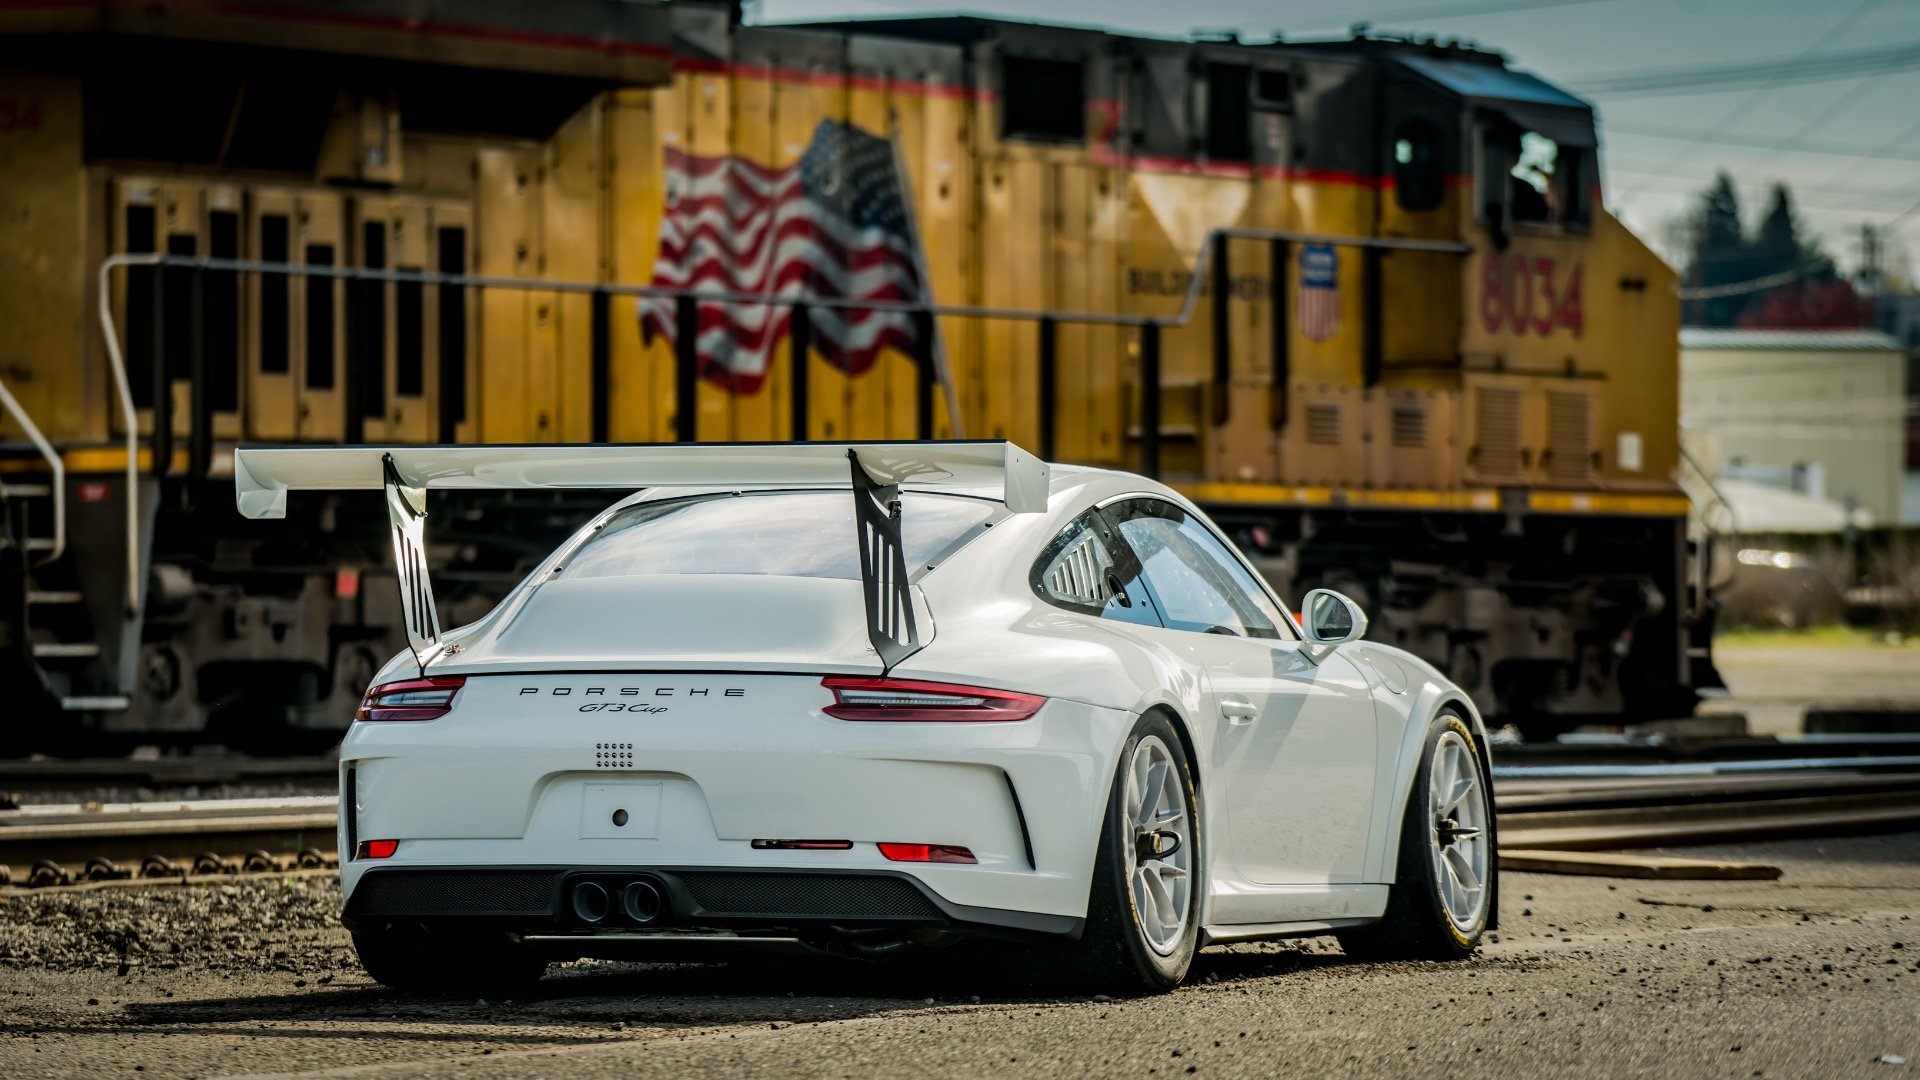 2018 Porsche GT3 Cup Car Race Car only 10 hours Spares $265k For Sale (picture 2 of 6)